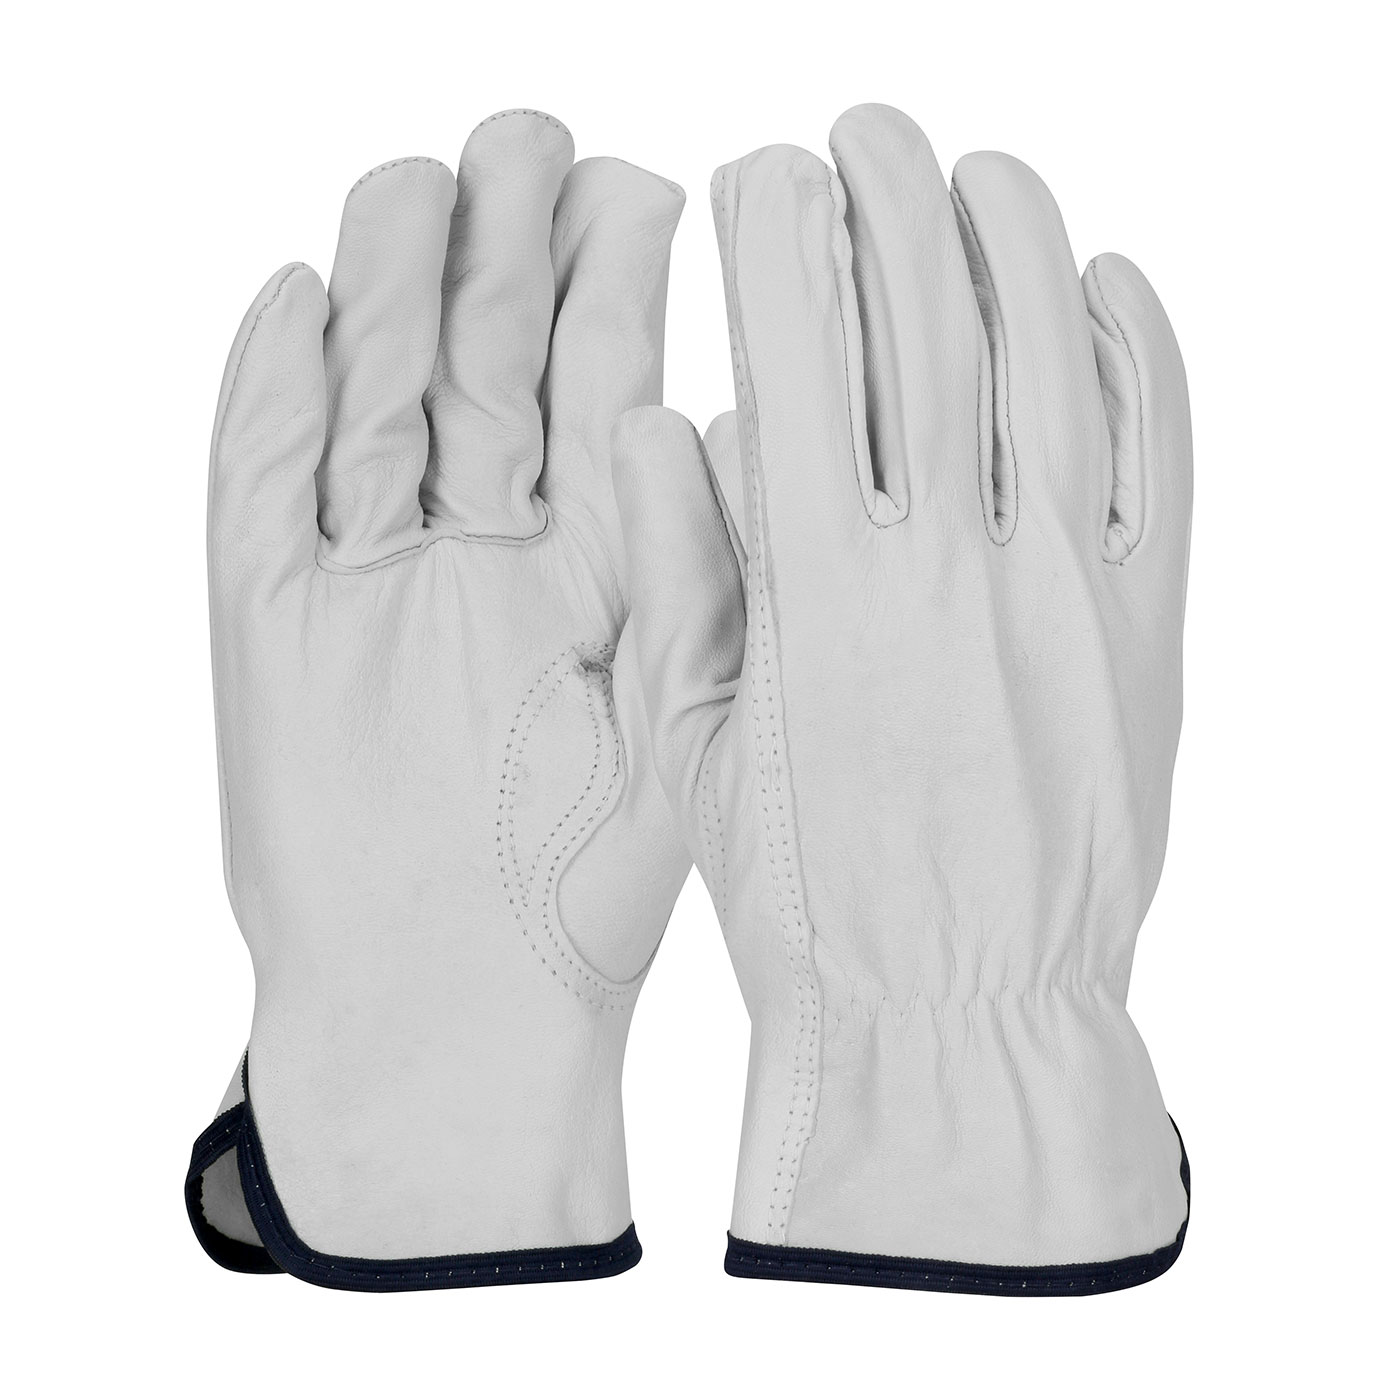 PIP® Industry Grade Top Grain Goatskin Leather Drivers Glove - Keystone Thumb #71-3600